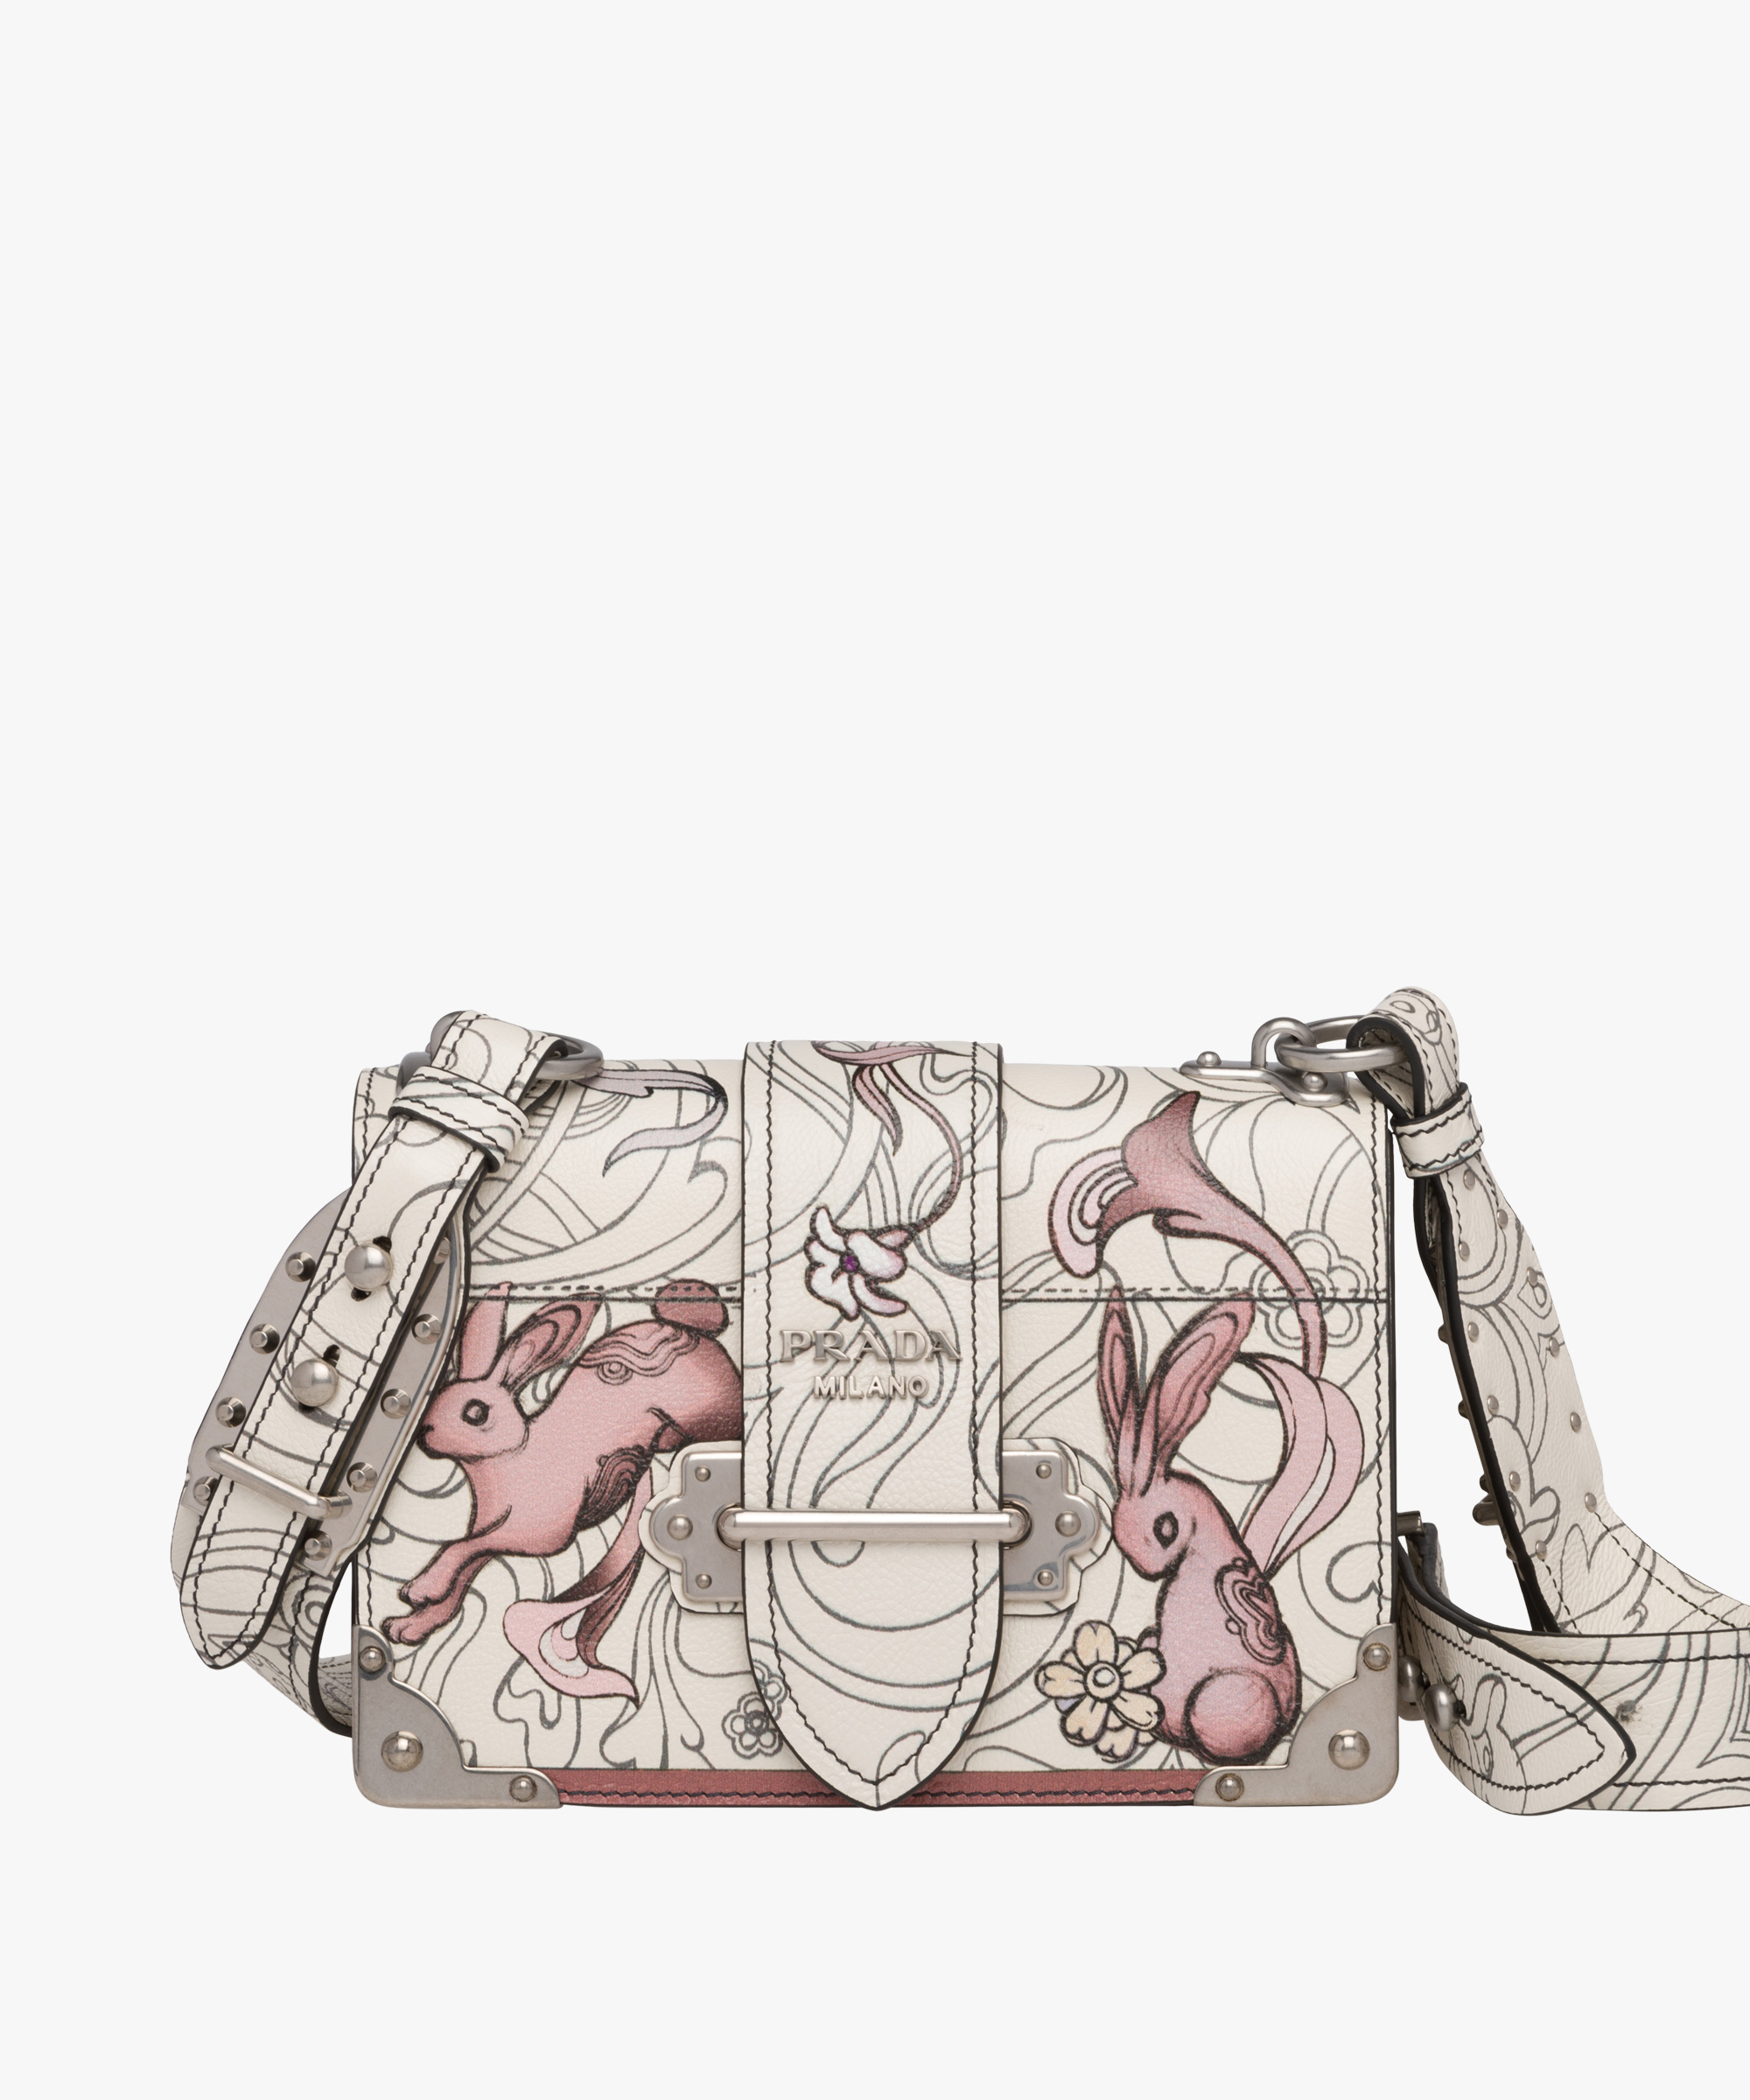 Printed Leather Shoulder Bag Prada WhdWGHZk